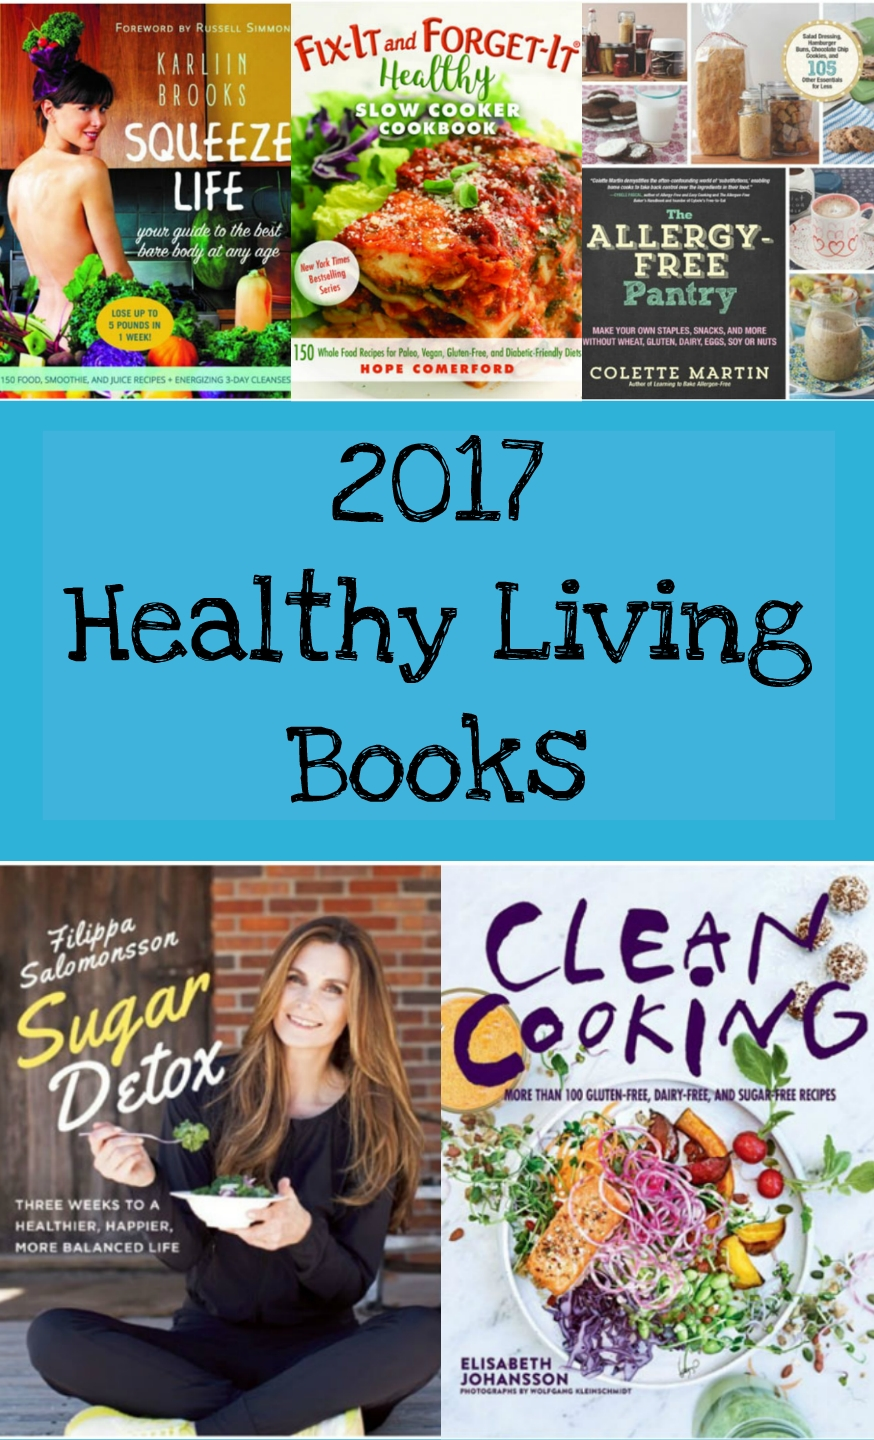 Healthy cookbooks to add to your book shelf with our best denver what is considered healthy changes over the years i think now we are finally getting somewhere though fast food chains are closing and new fresh markets forumfinder Gallery